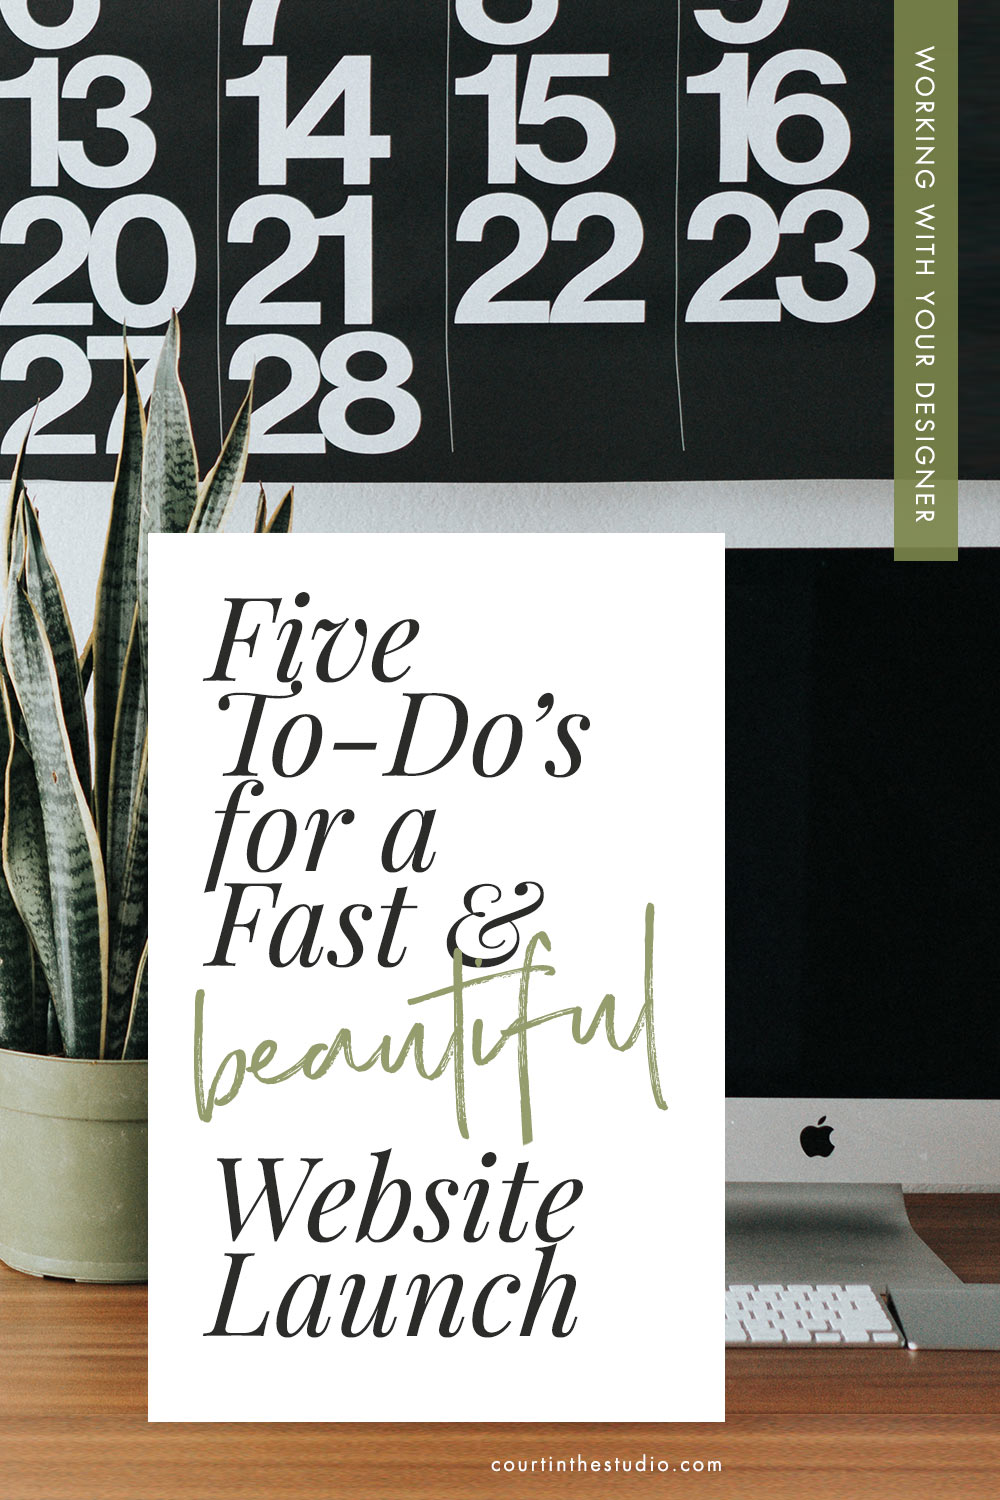 Freelance Design Tips to Launch Your Site Fast.jpg